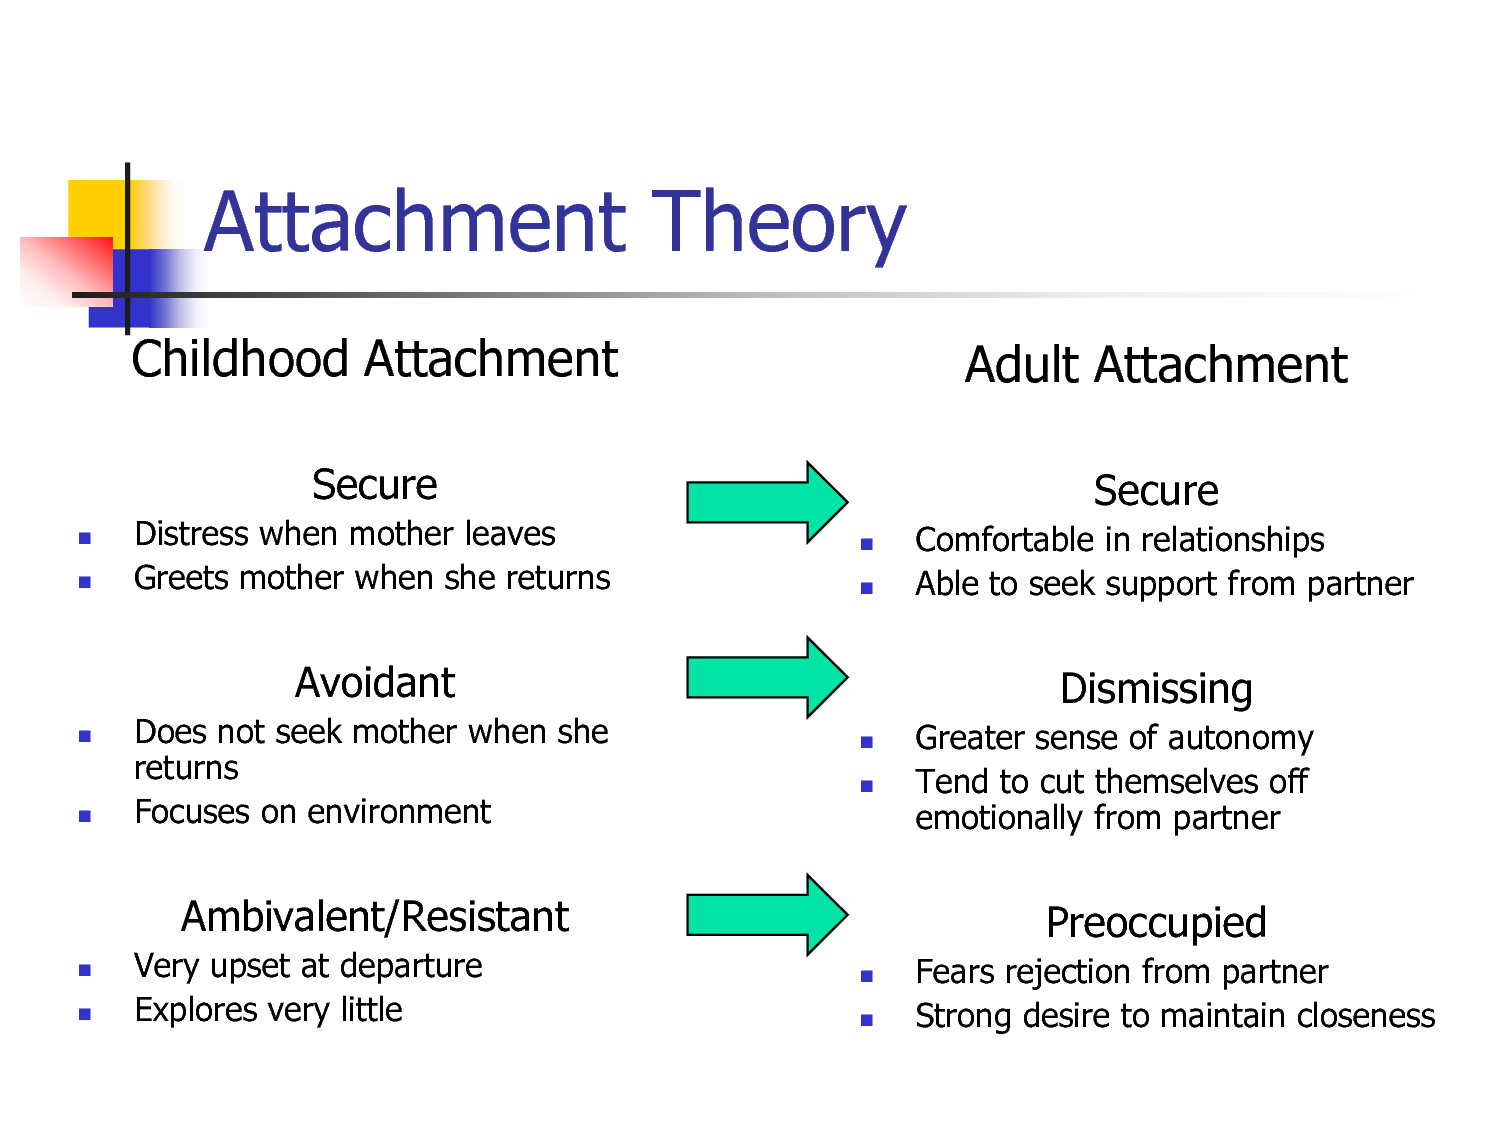 attachment theory 4 essay Free essay: in phase 4 a partnership starts to occur between the child and their caregiver, and the child will start to accommodate to the mother's needs.